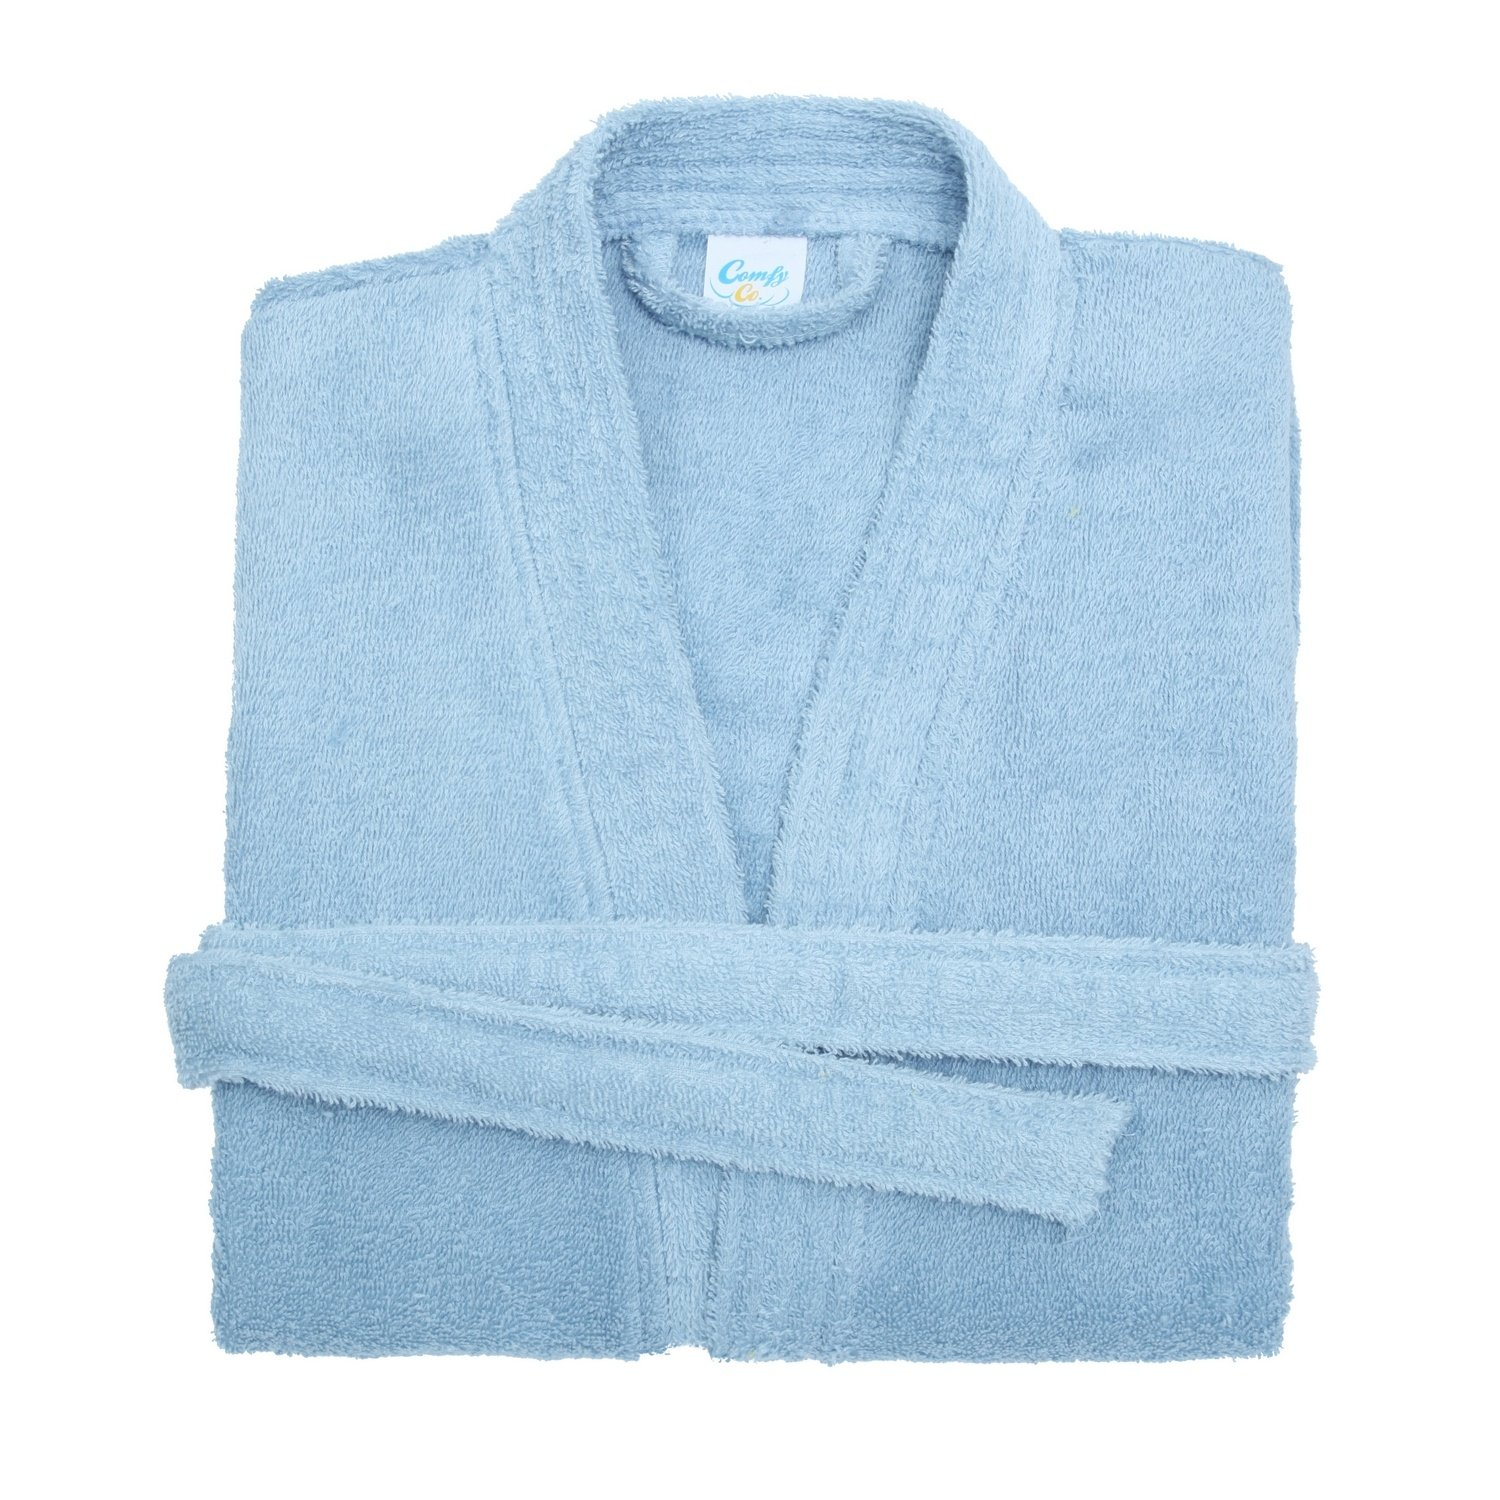 Comfy Unisex Co Bath Robe / Loungewear Comfy Co